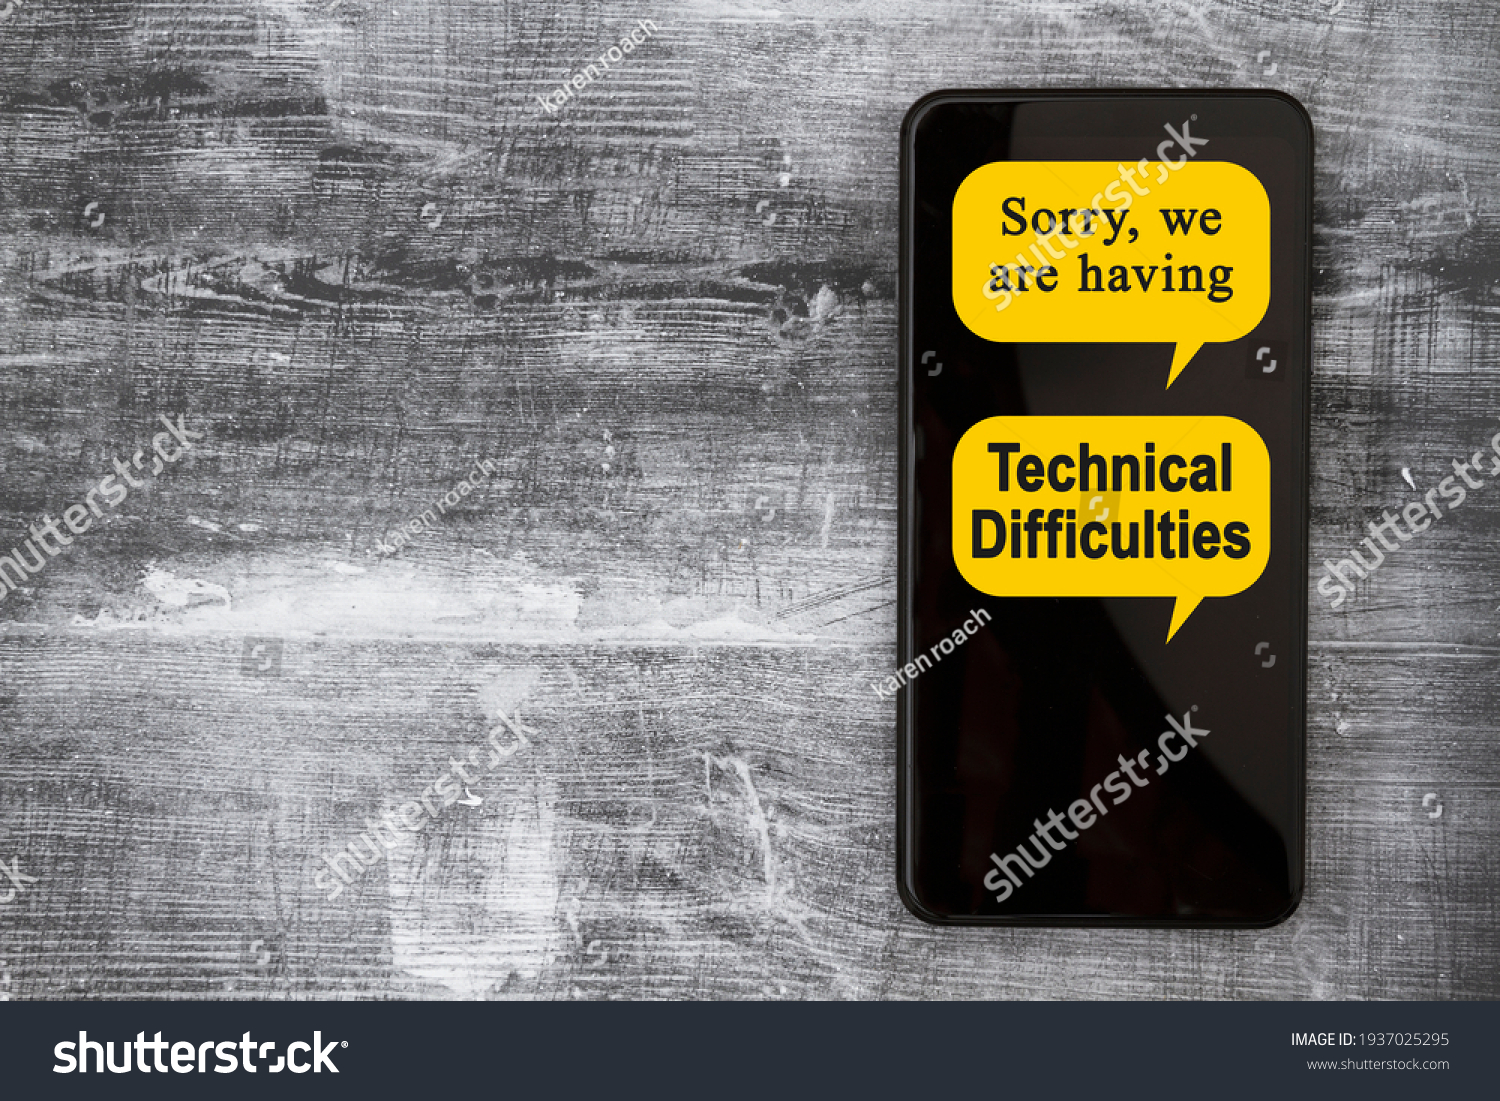 Sorry we are having Technical Difficulties message on a black mobile phone #1937025295